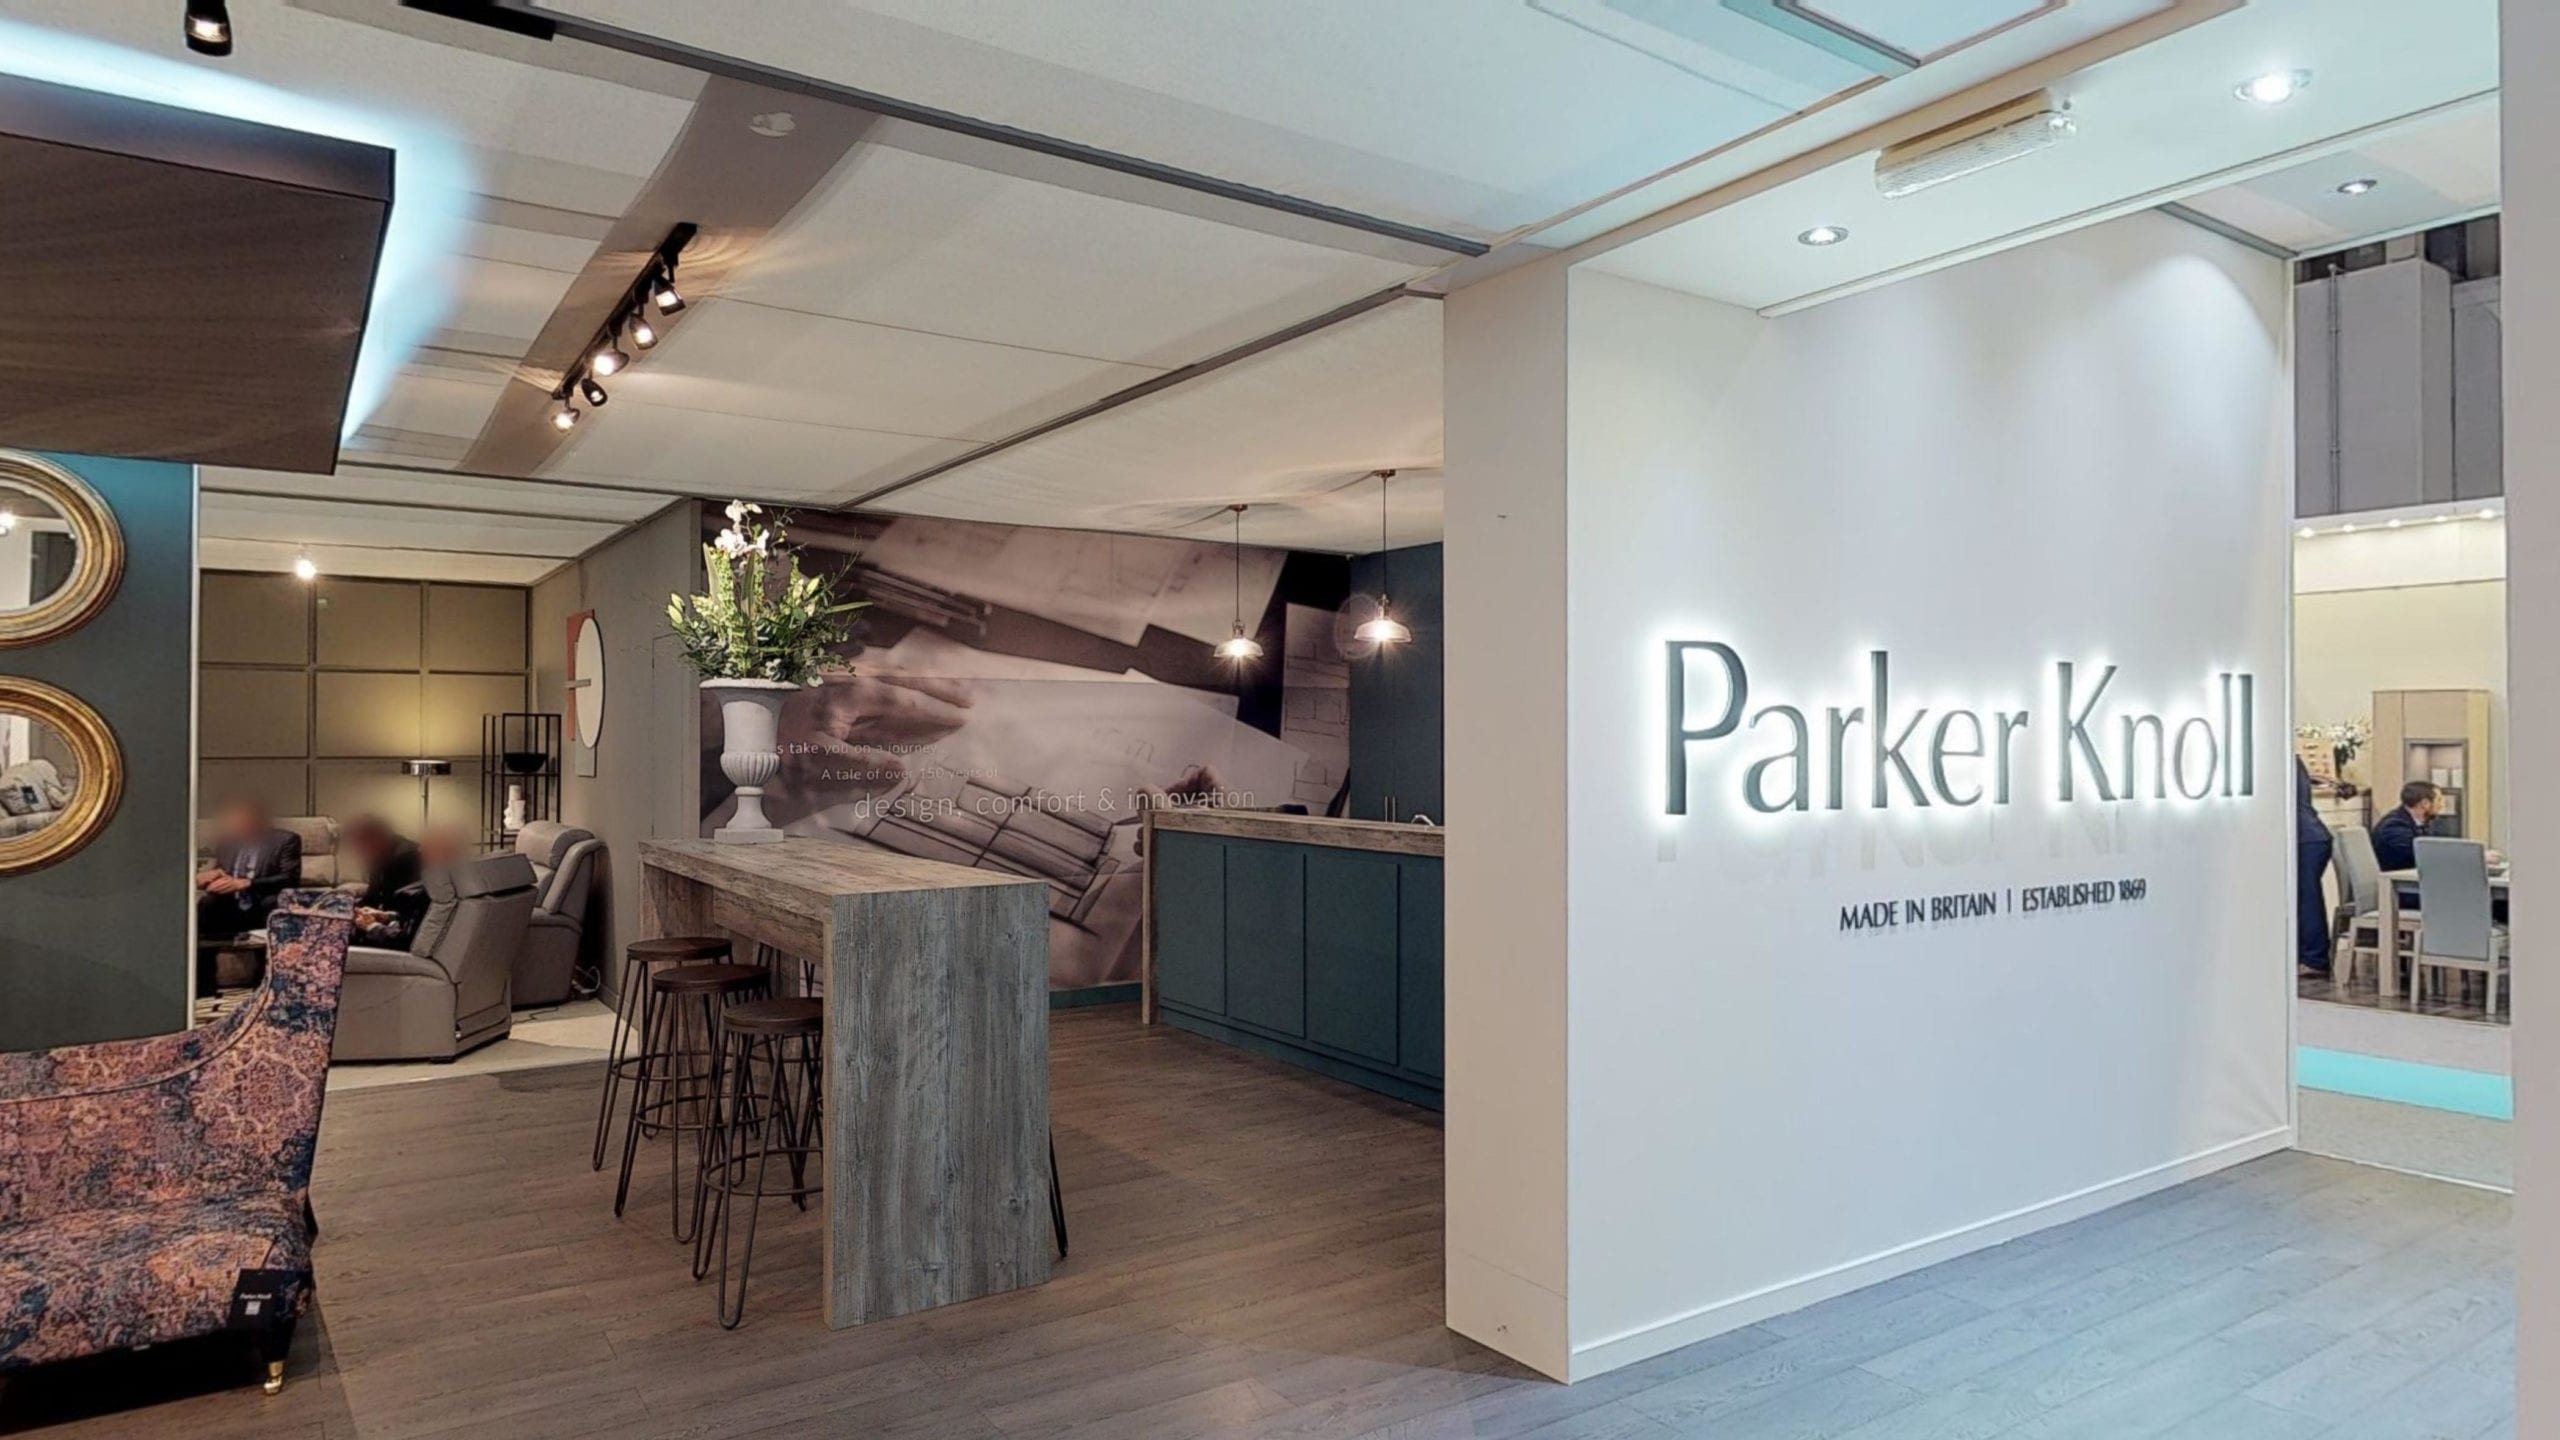 High res image from Parker Knoll exhibition